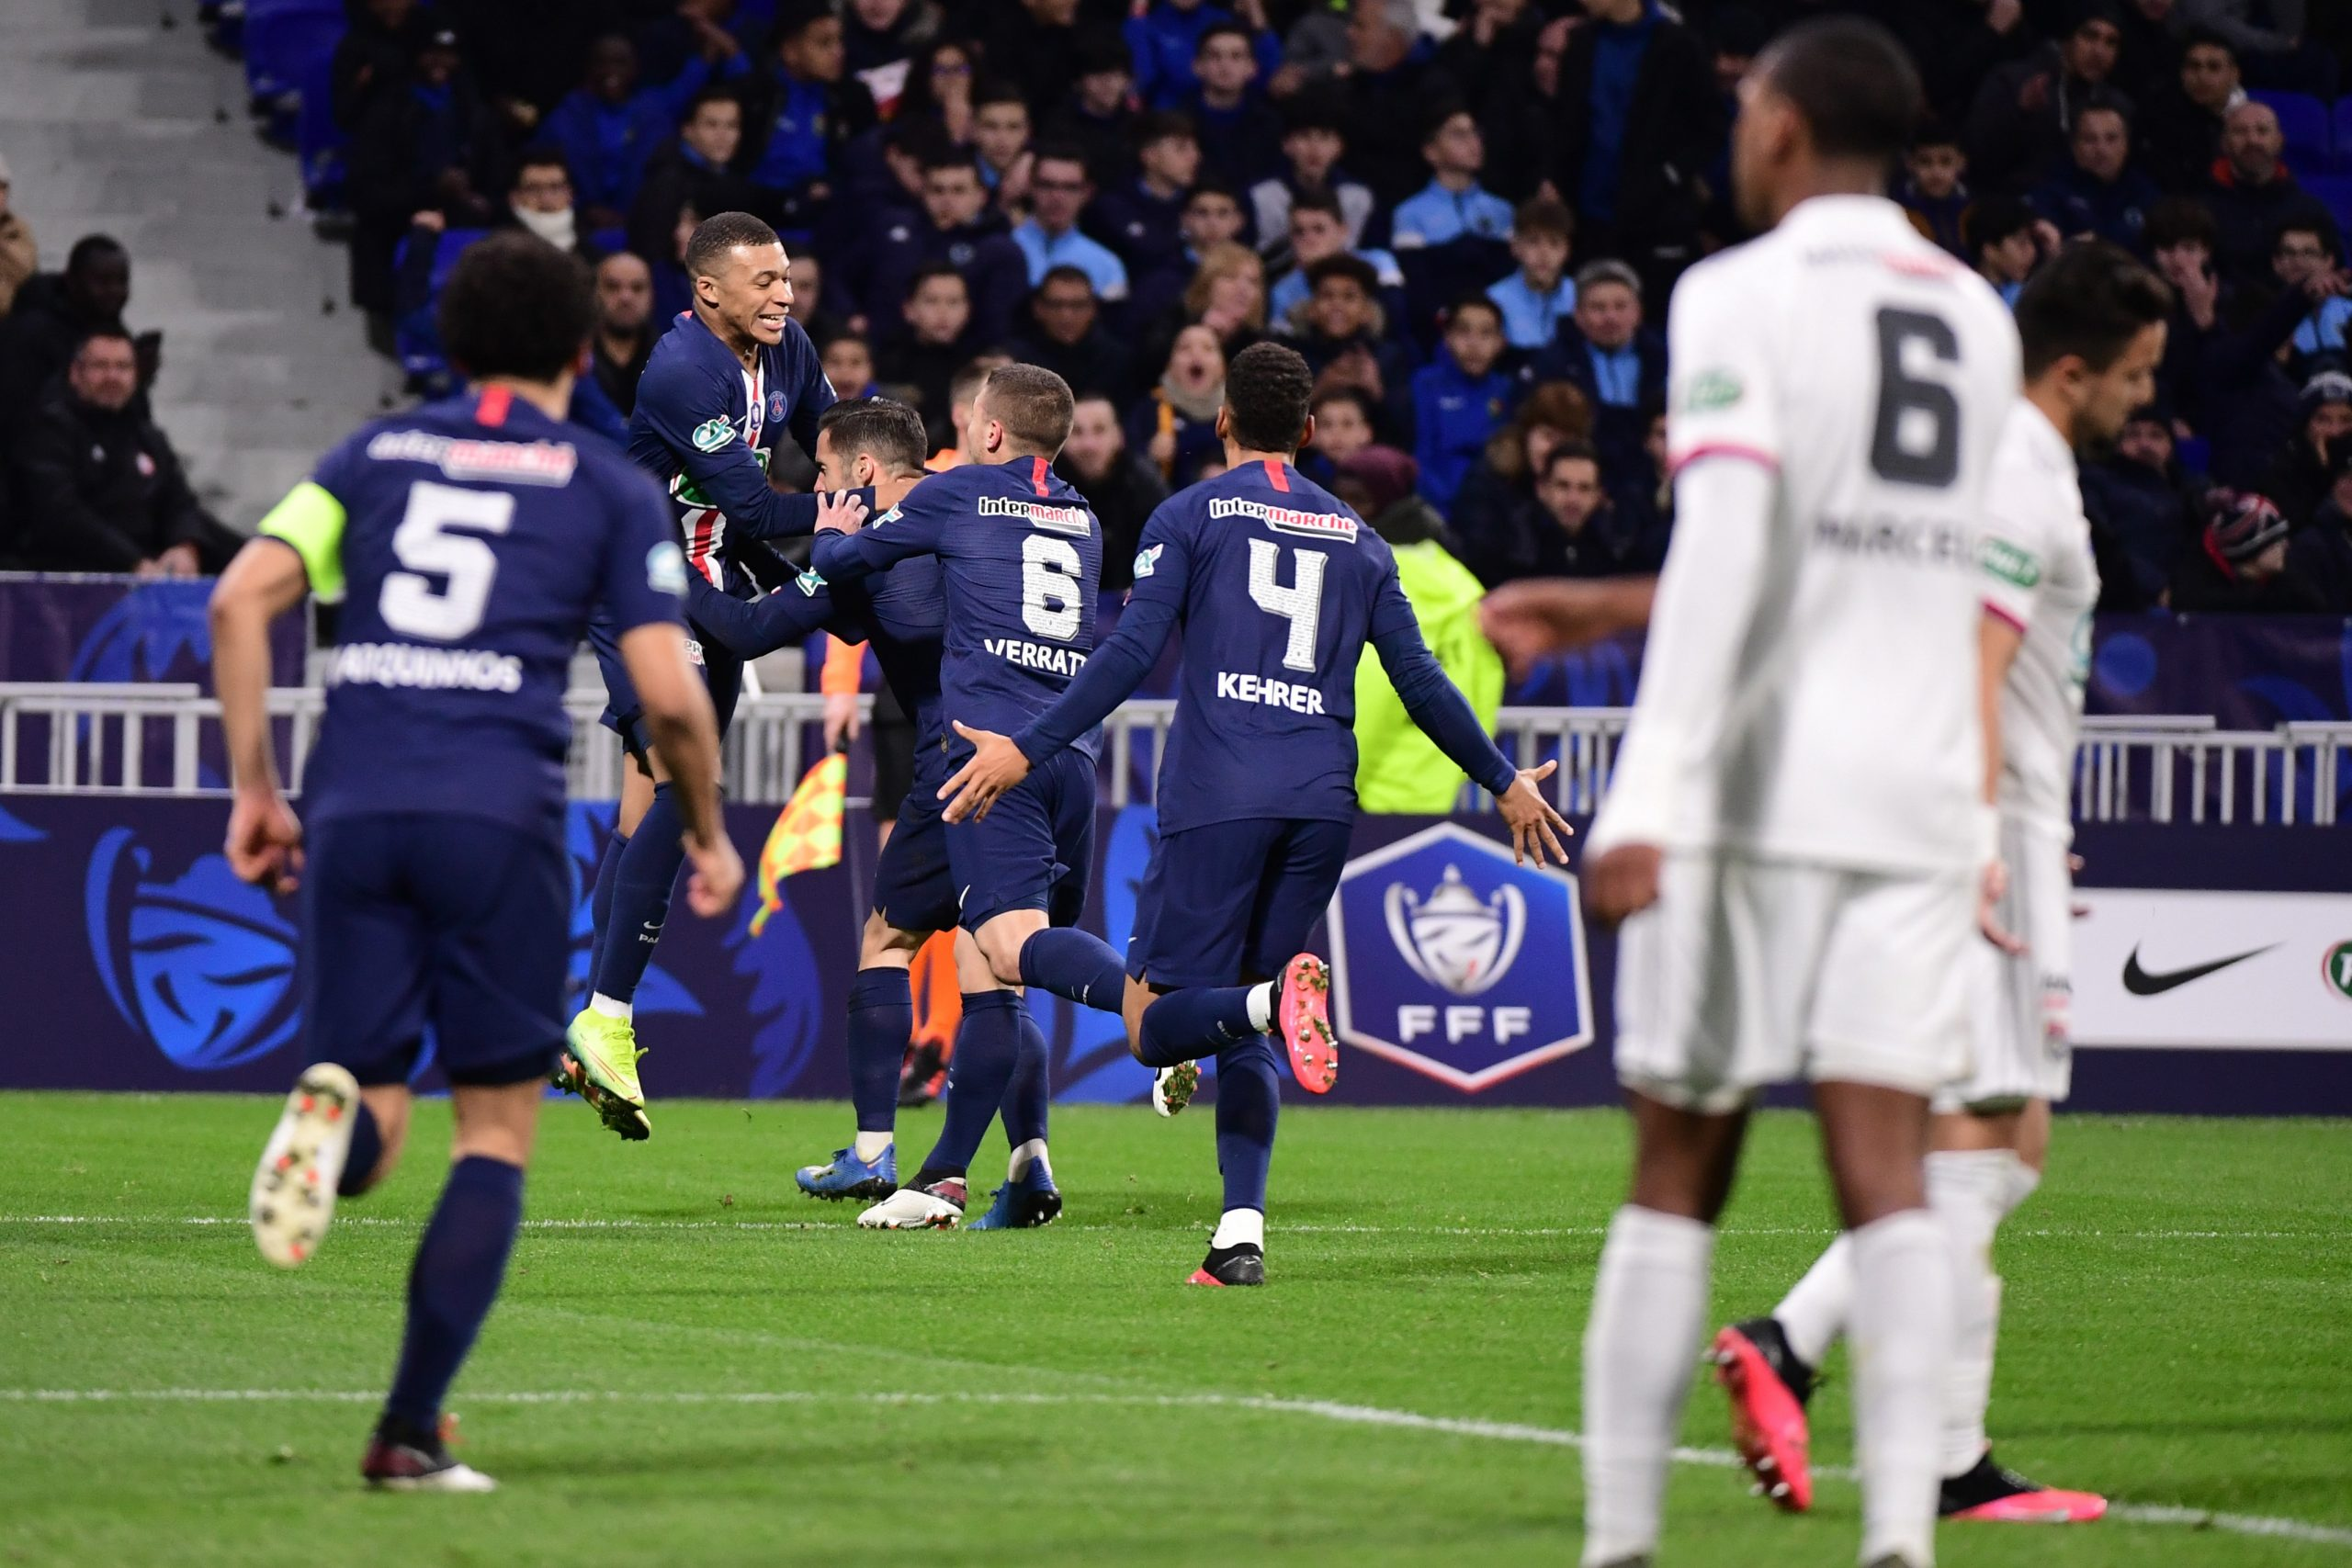 Resume Ol Psg 1 5 La Video Des Buts Et Temps Forts Du Match